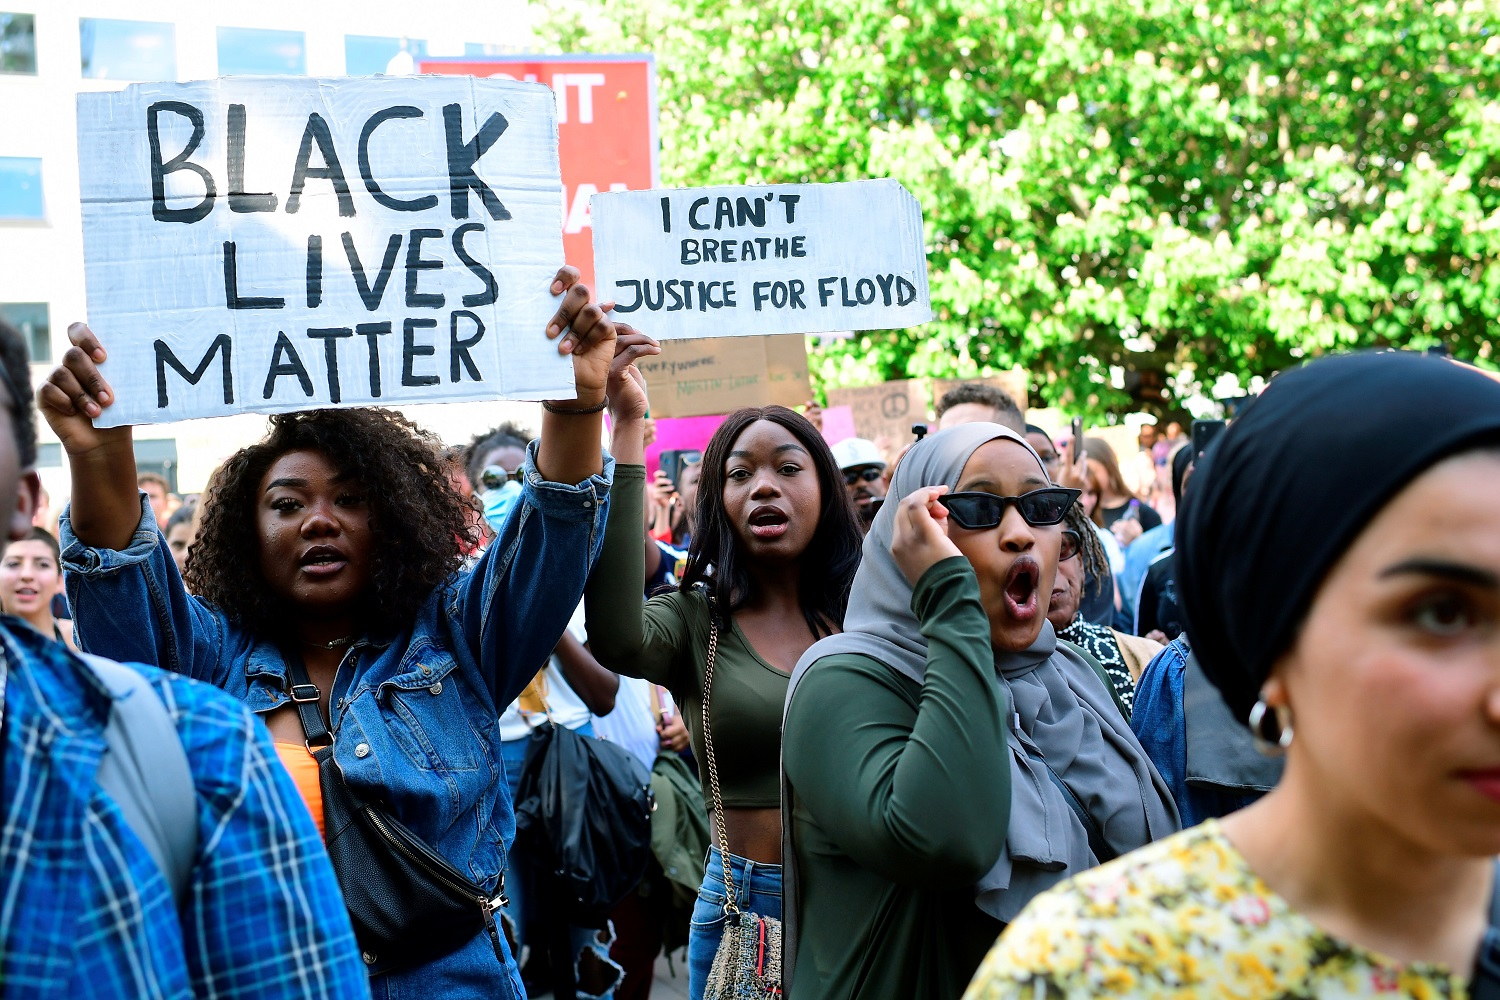 Protest in solidarity with the Black Lives Matter movement, in Aarhus